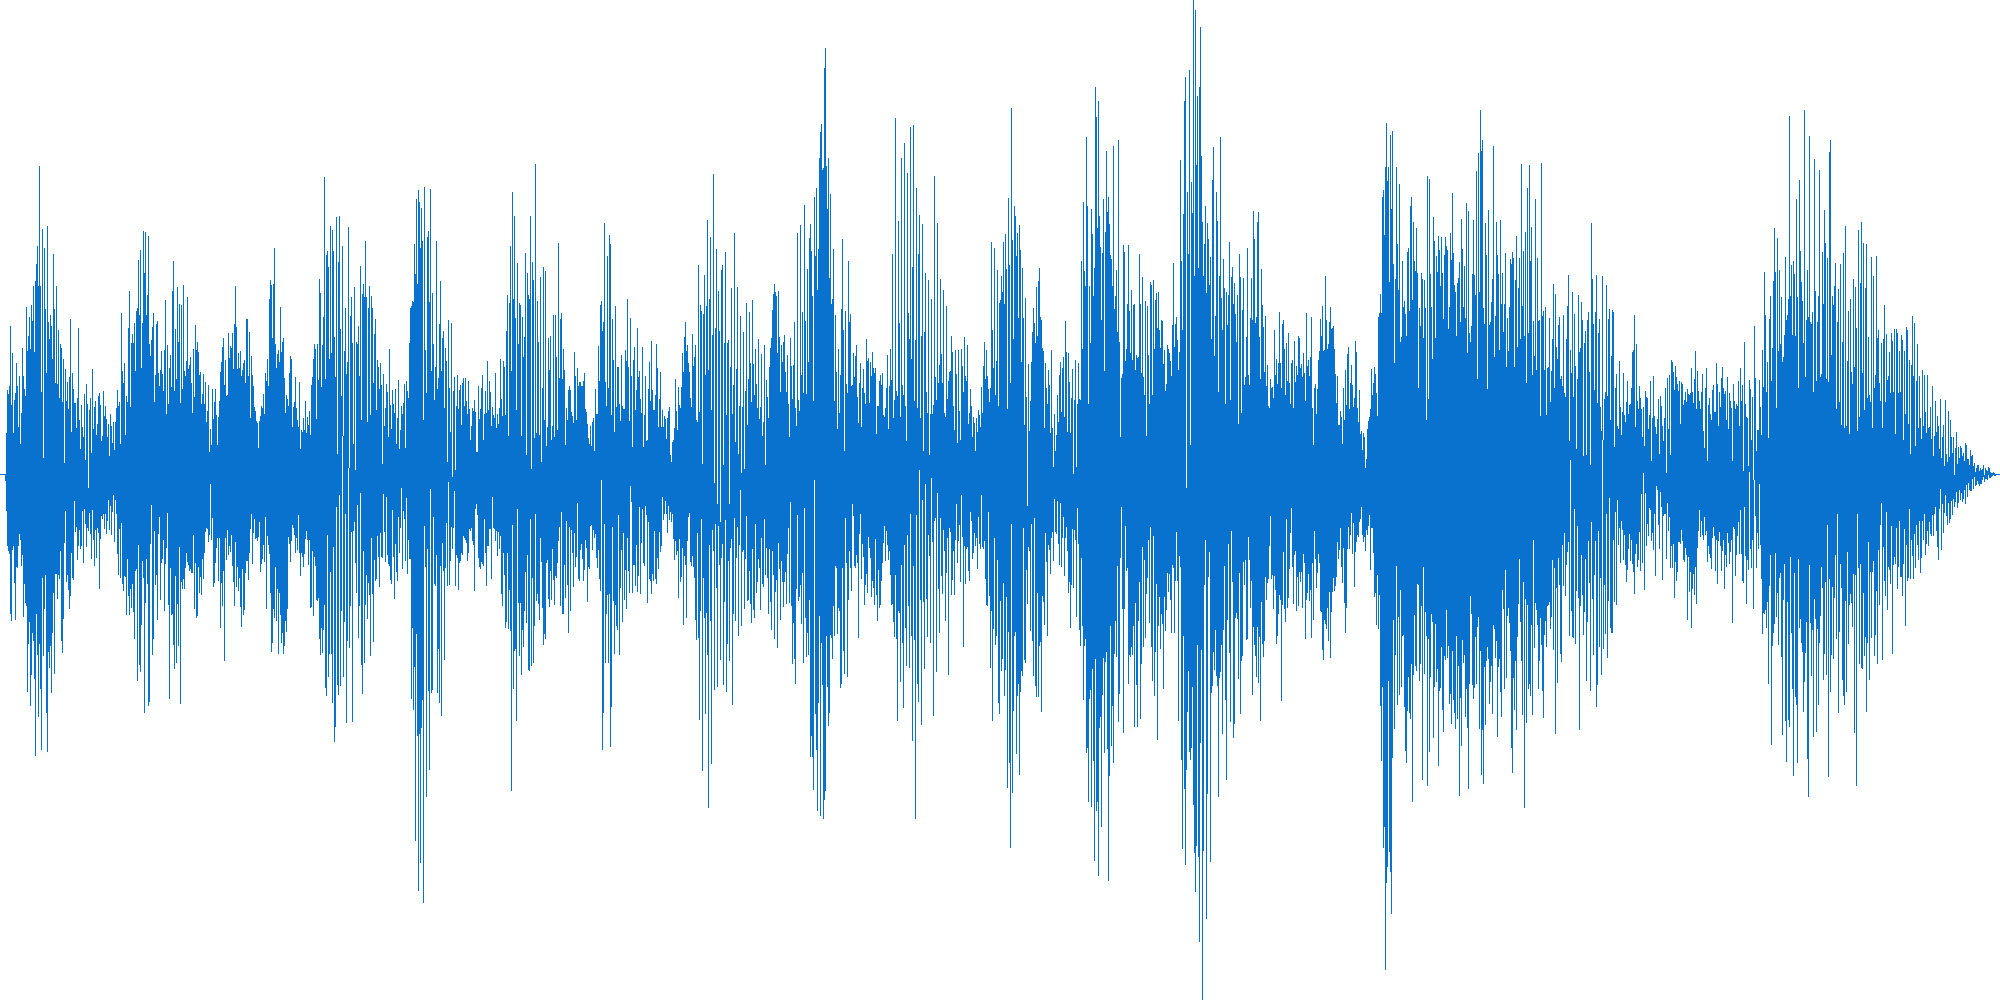 How to generate waveform images from audio files | Cloudinary Blog